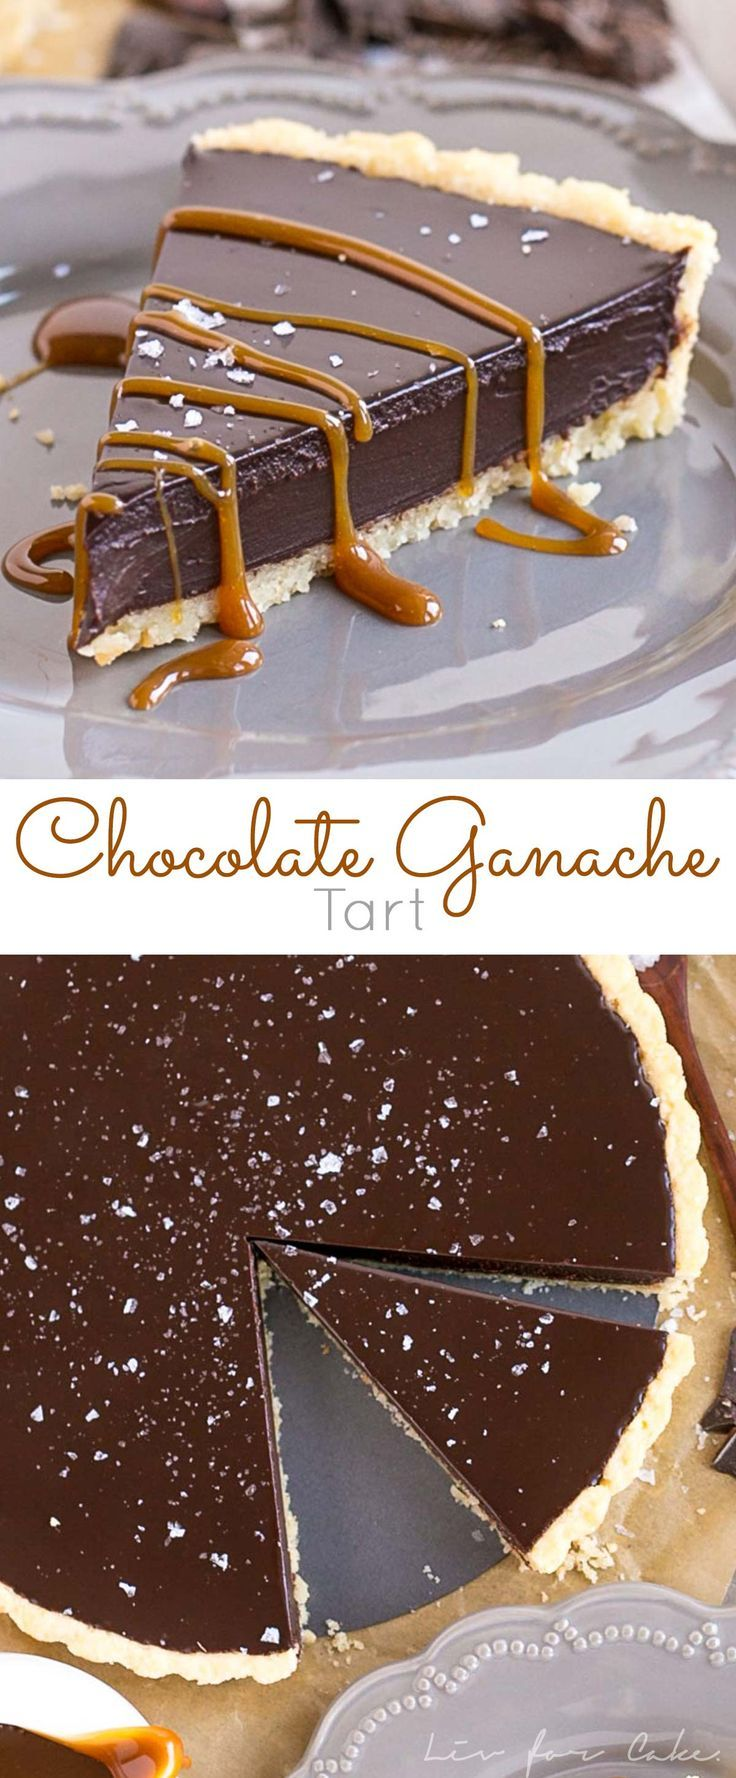 This simple and elegant Dark Chocolate Ganache Tart can be topped with anything you like, from a sprinkling of sea salt to dulce de leche or fresh berries. | http://livforcake.com